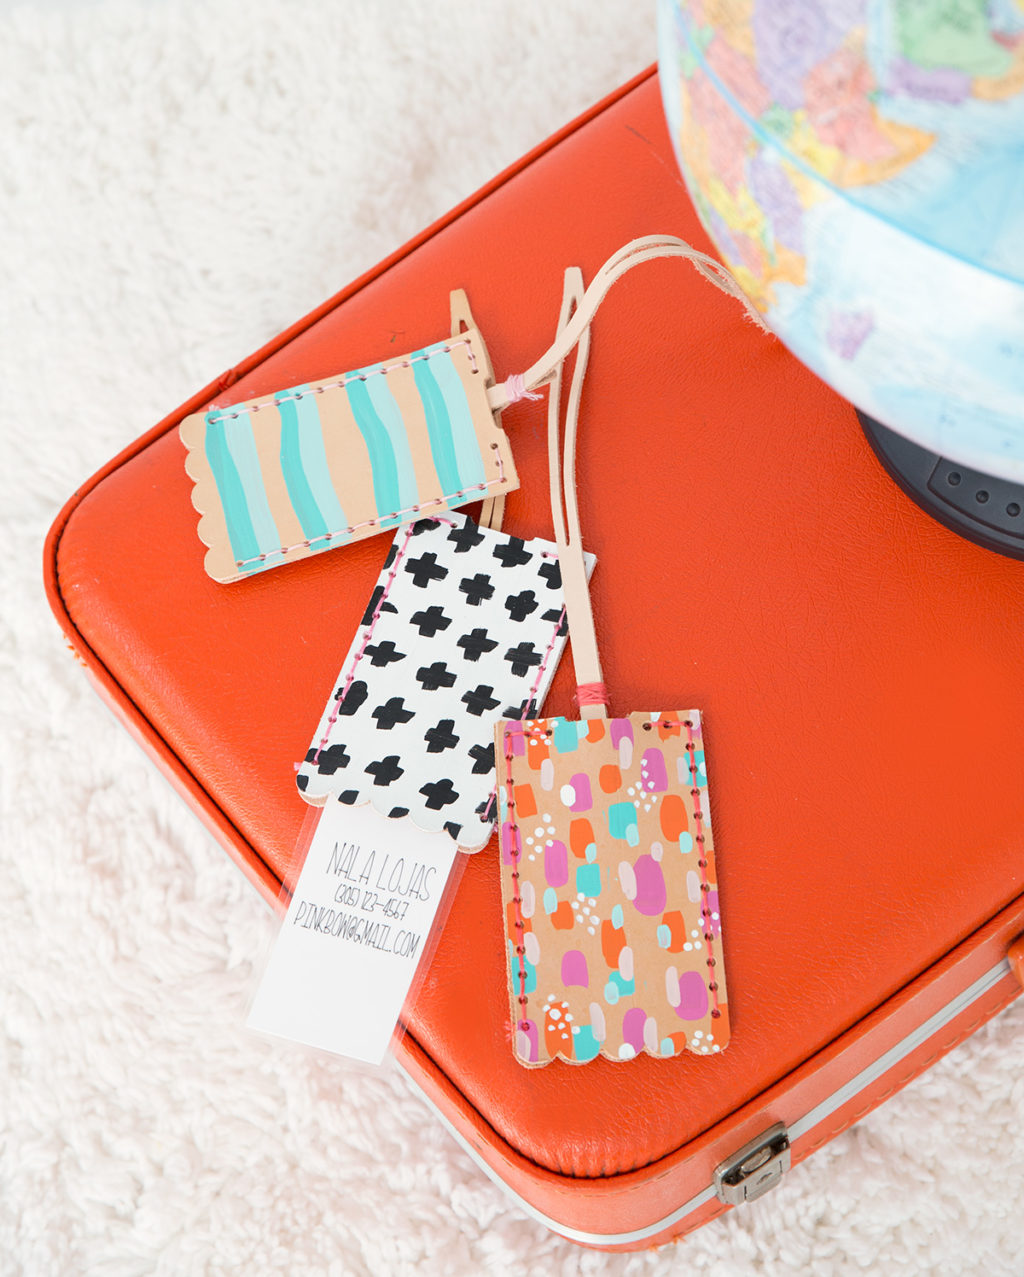 DIY colorful leather luggage tags with glitter for a glam touch